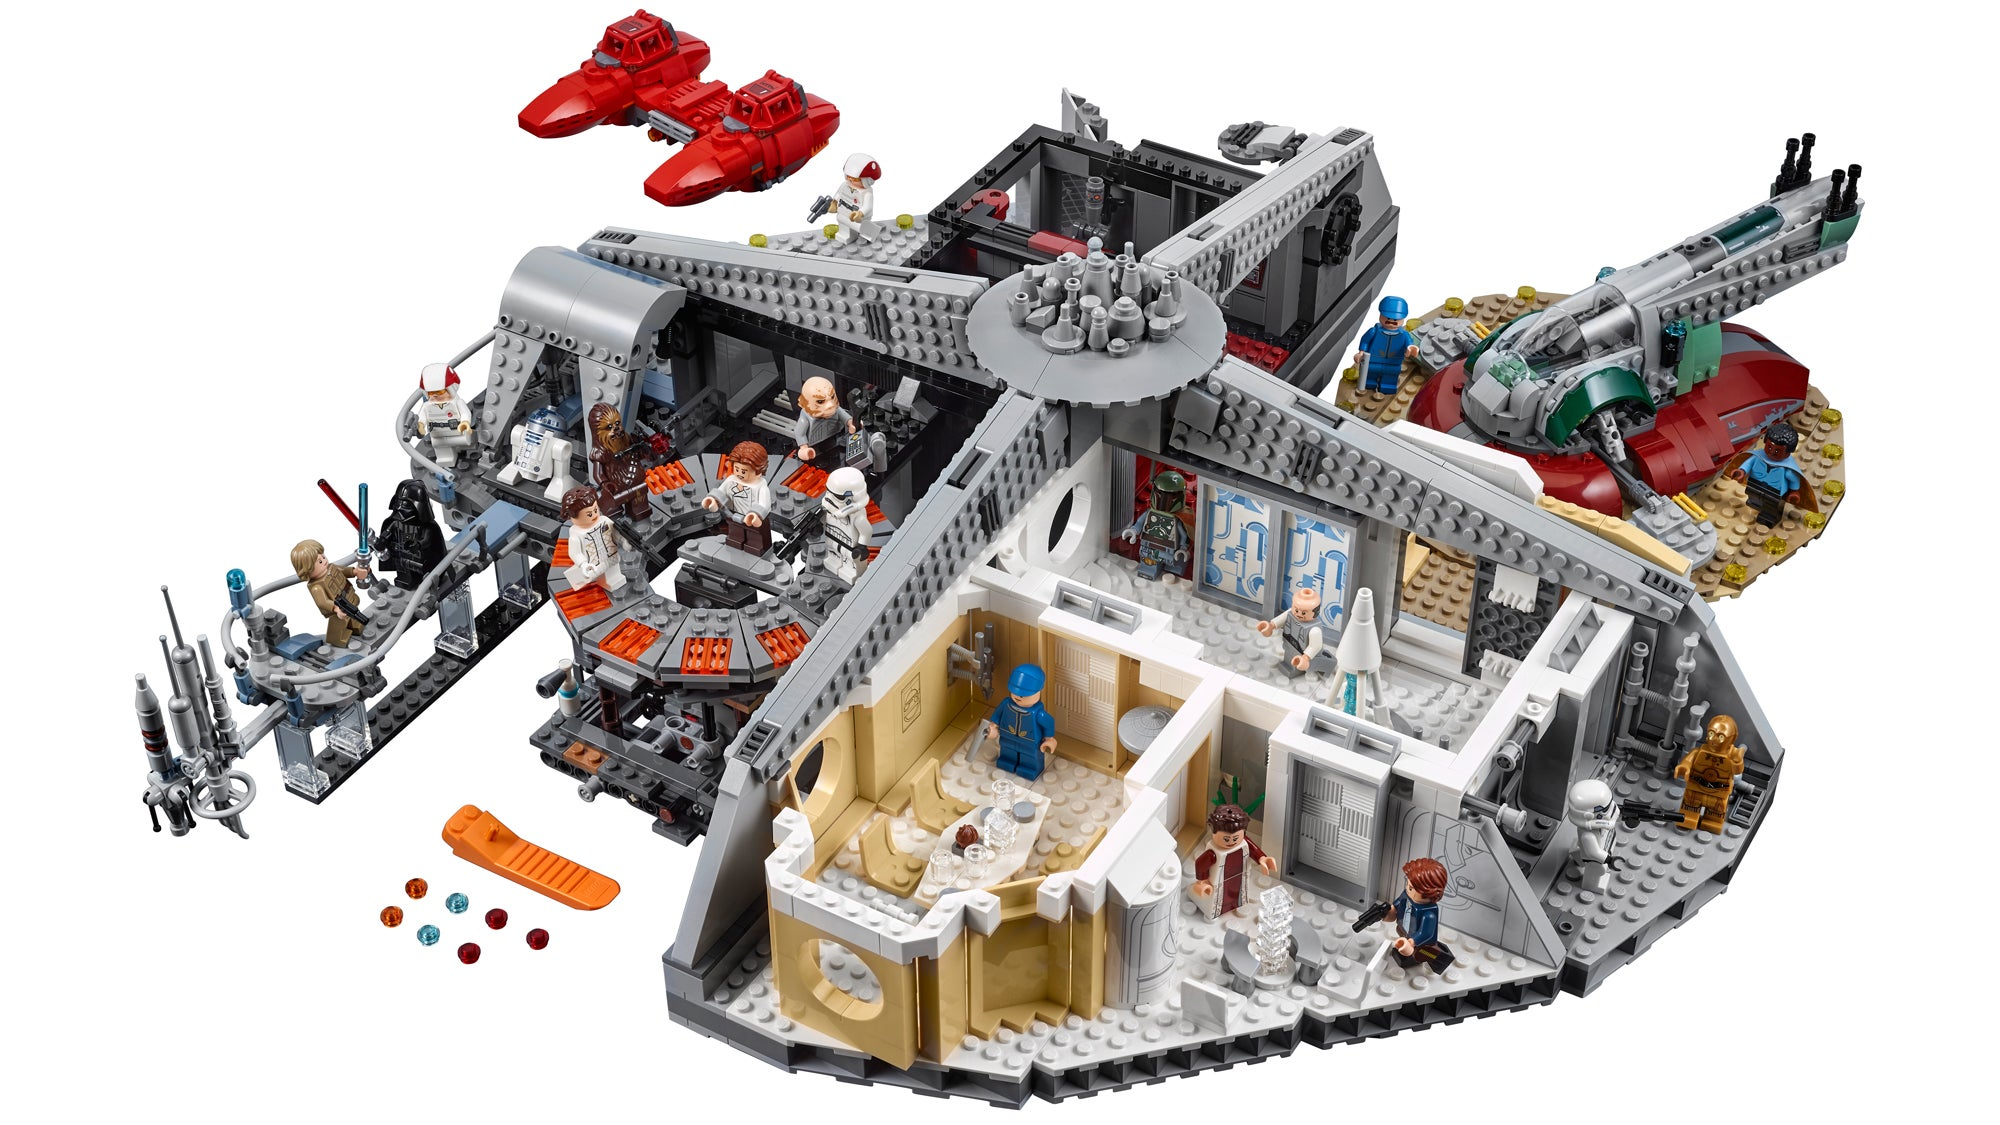 Lego Finally Gives Lando The Monstrous 2800+ Piece Cloud City He Deserves